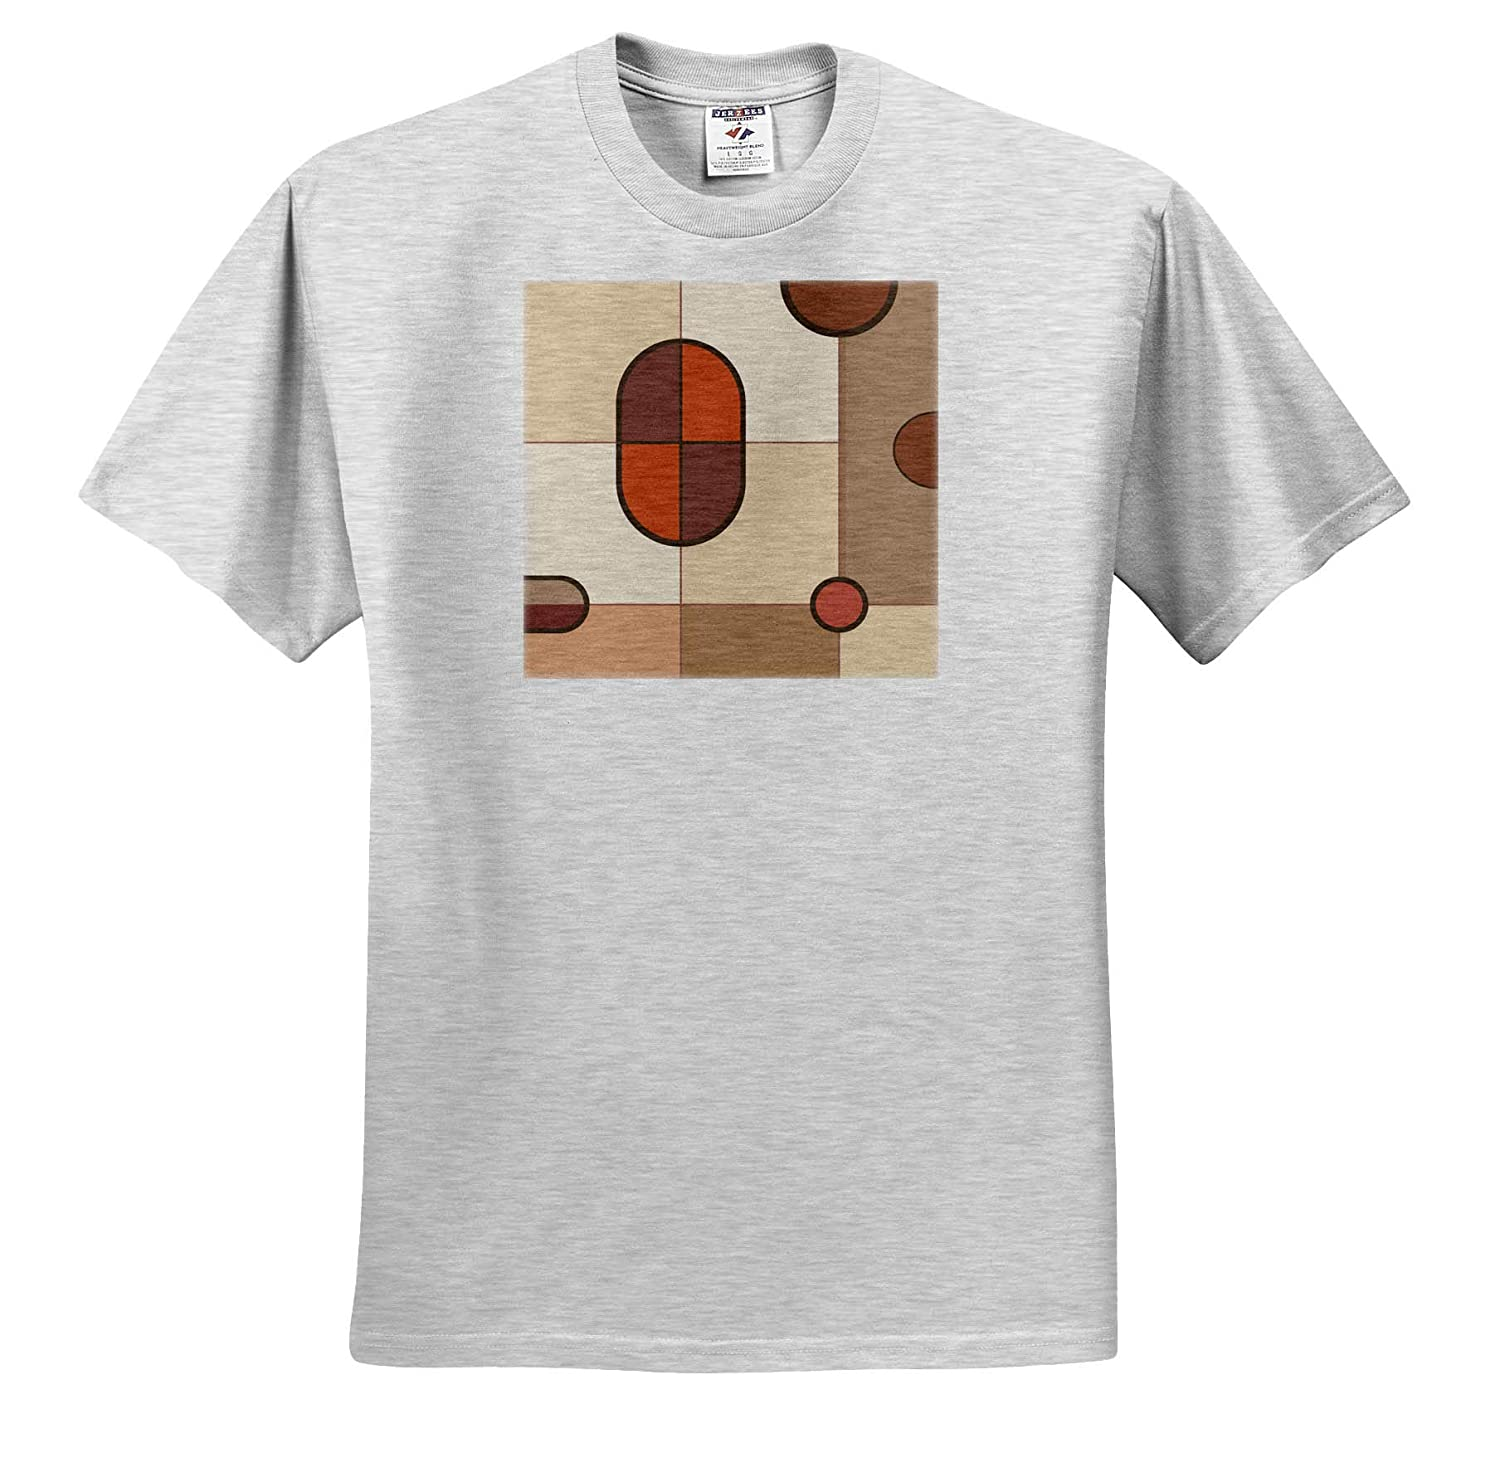 Abstract Art Orange and Cream Colors 3dRose Natalie Paskell - T-Shirts Abstract Art Shapes in Browns